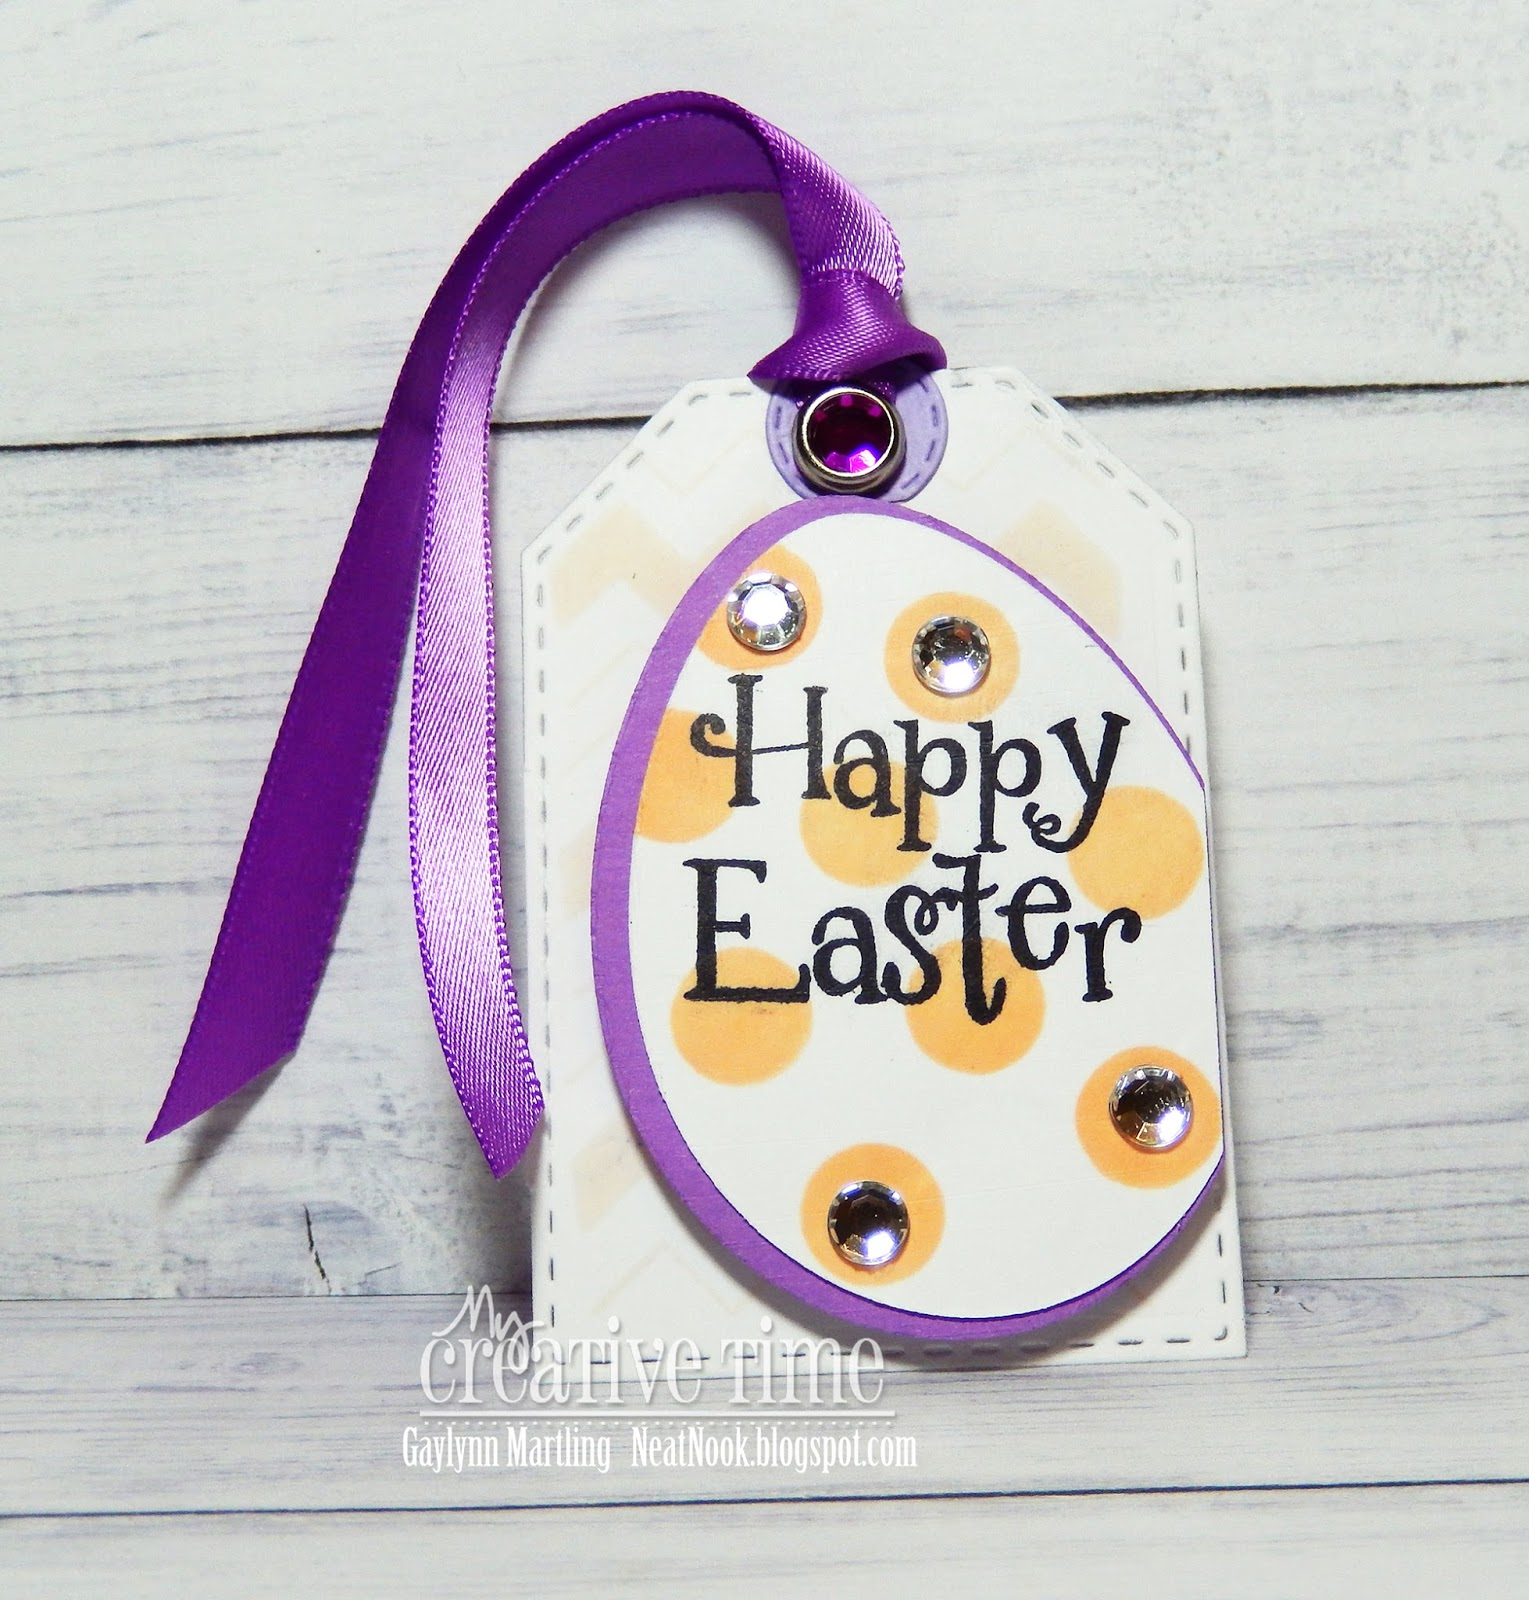 Neat nook creations easter egg gift tag mct 76th edition sneak peek 2 easter egg gift tag mct 76th edition sneak peek 2 negle Image collections